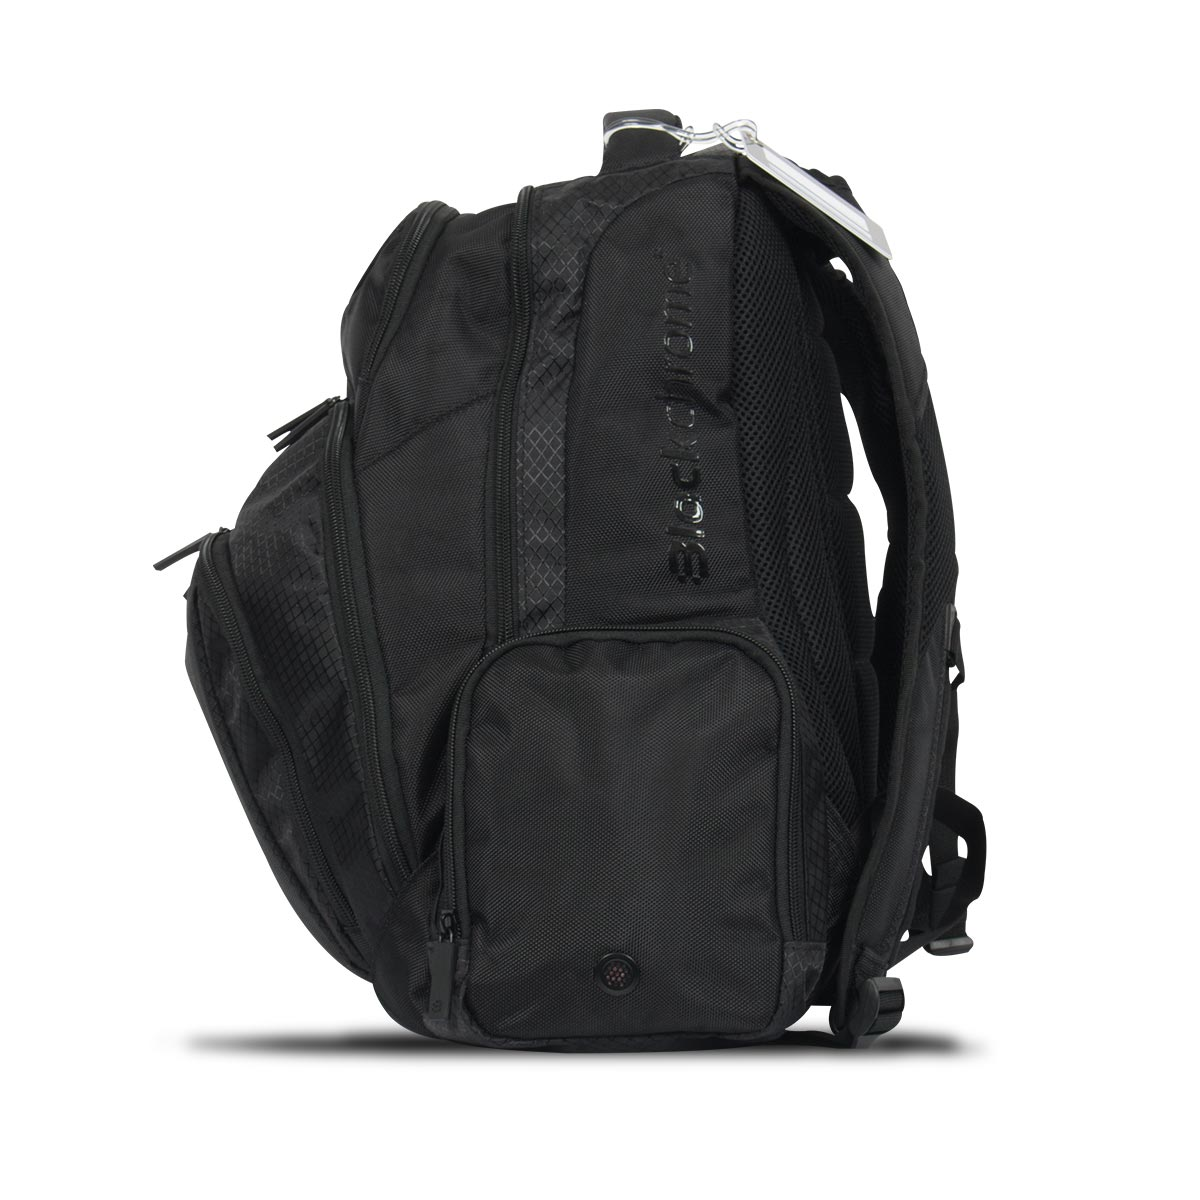 The Elite Backpack #4